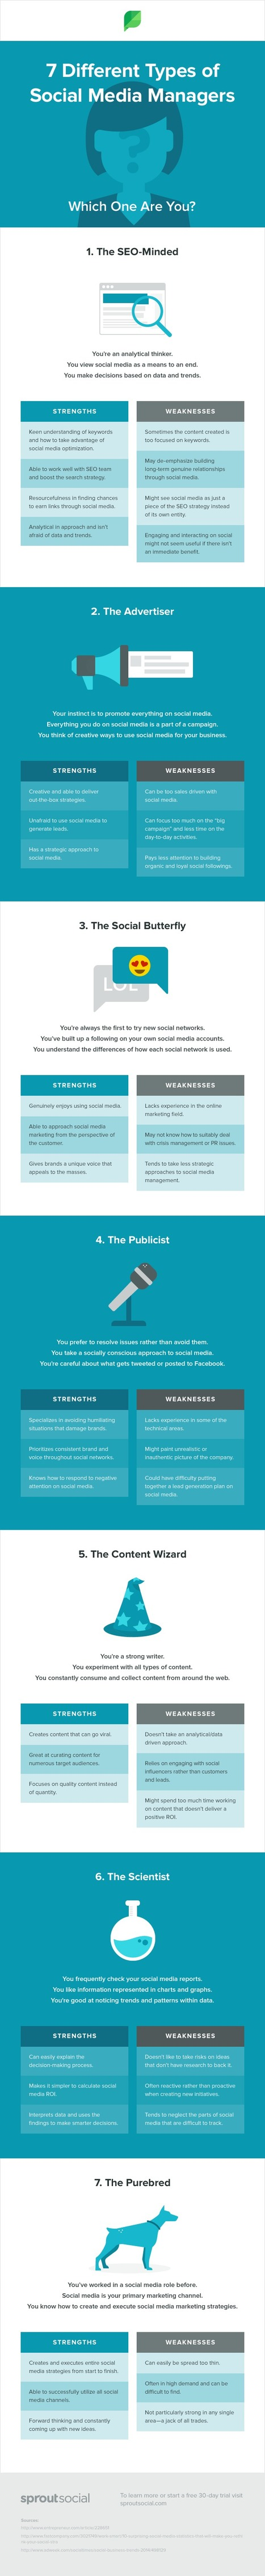 The 7 Different Types of Social Media Managers: Which One Are You? #Infographic | Social Media sites | Scoop.it